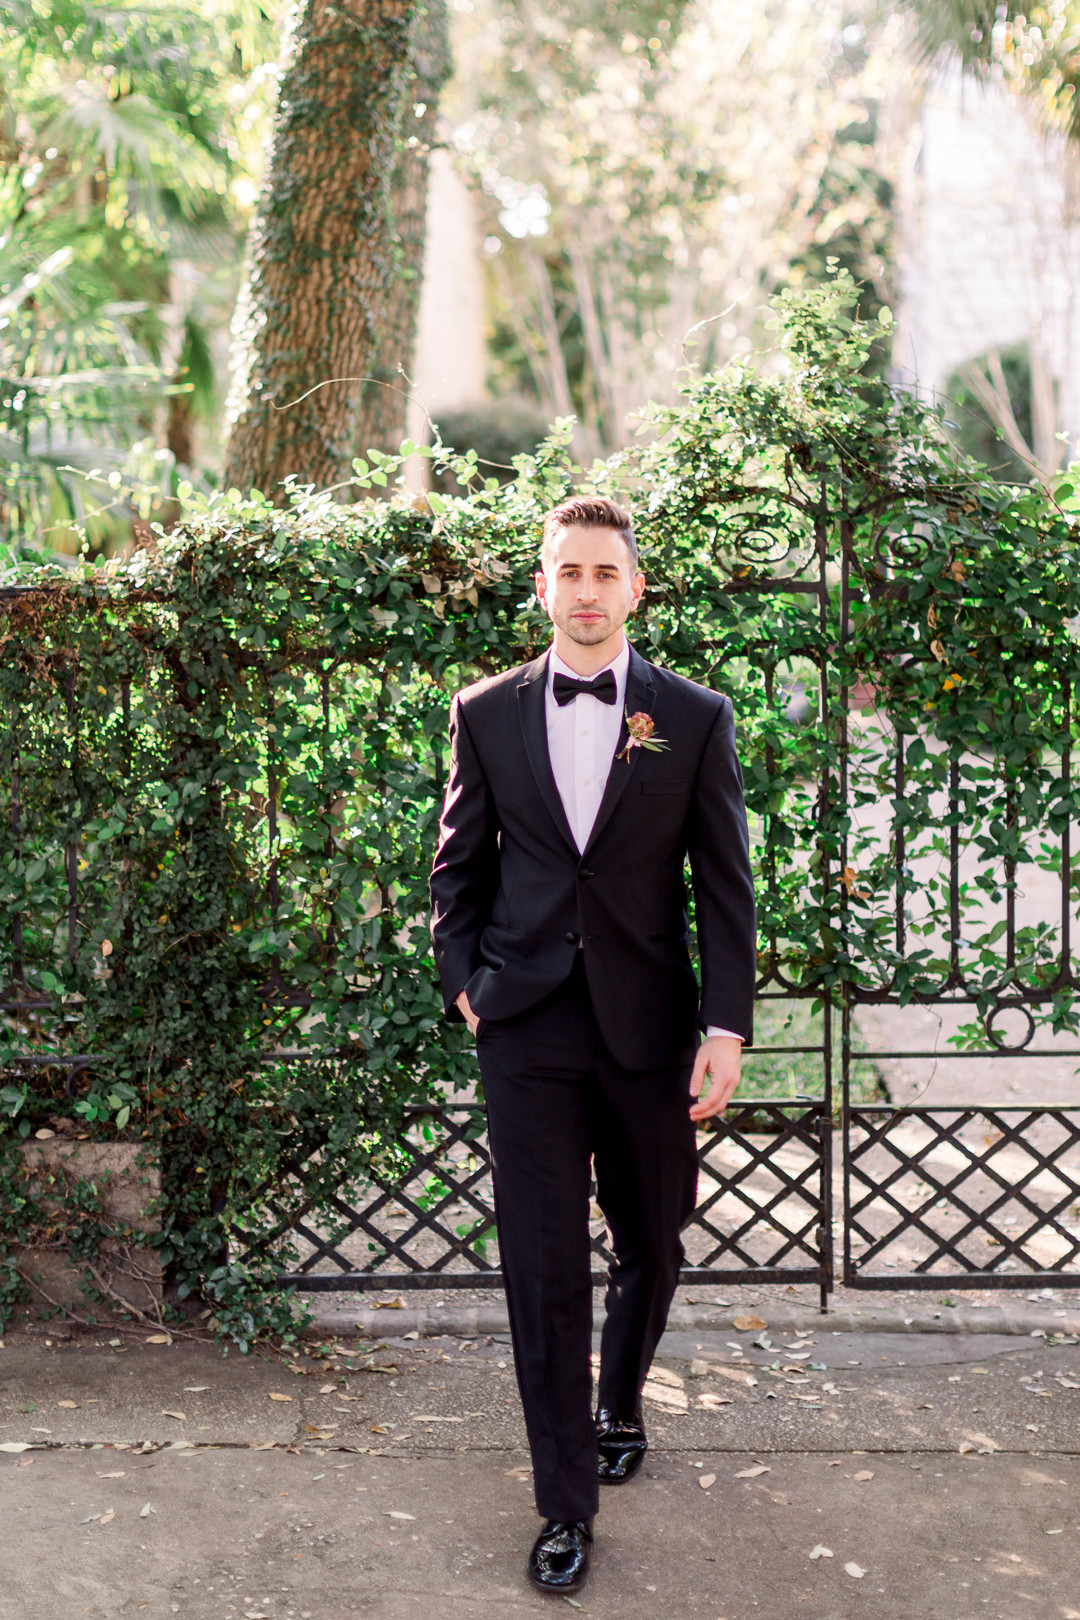 downtown-charleston-wedding-elopement-25.jpg